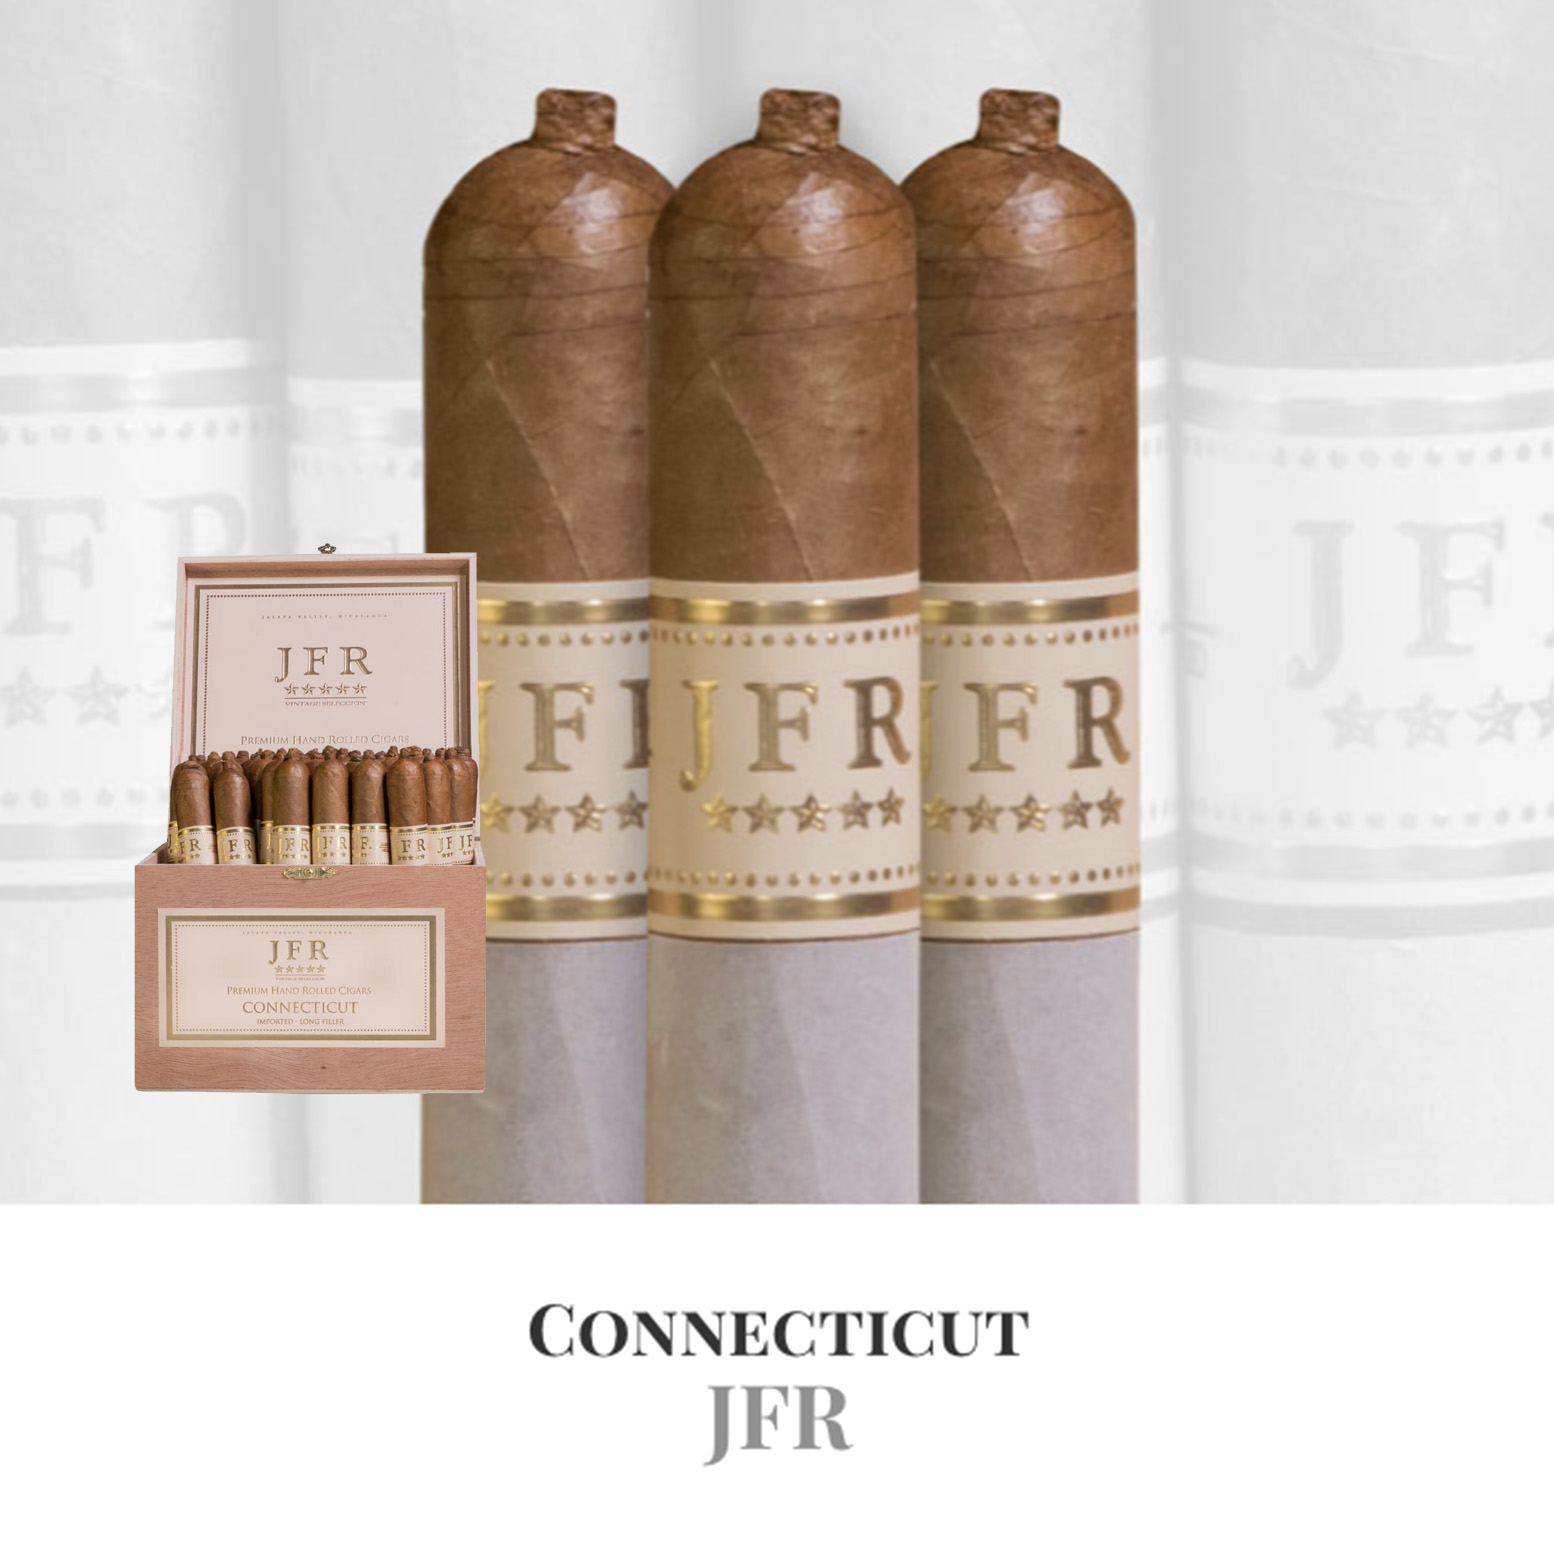 JFR Connecticut